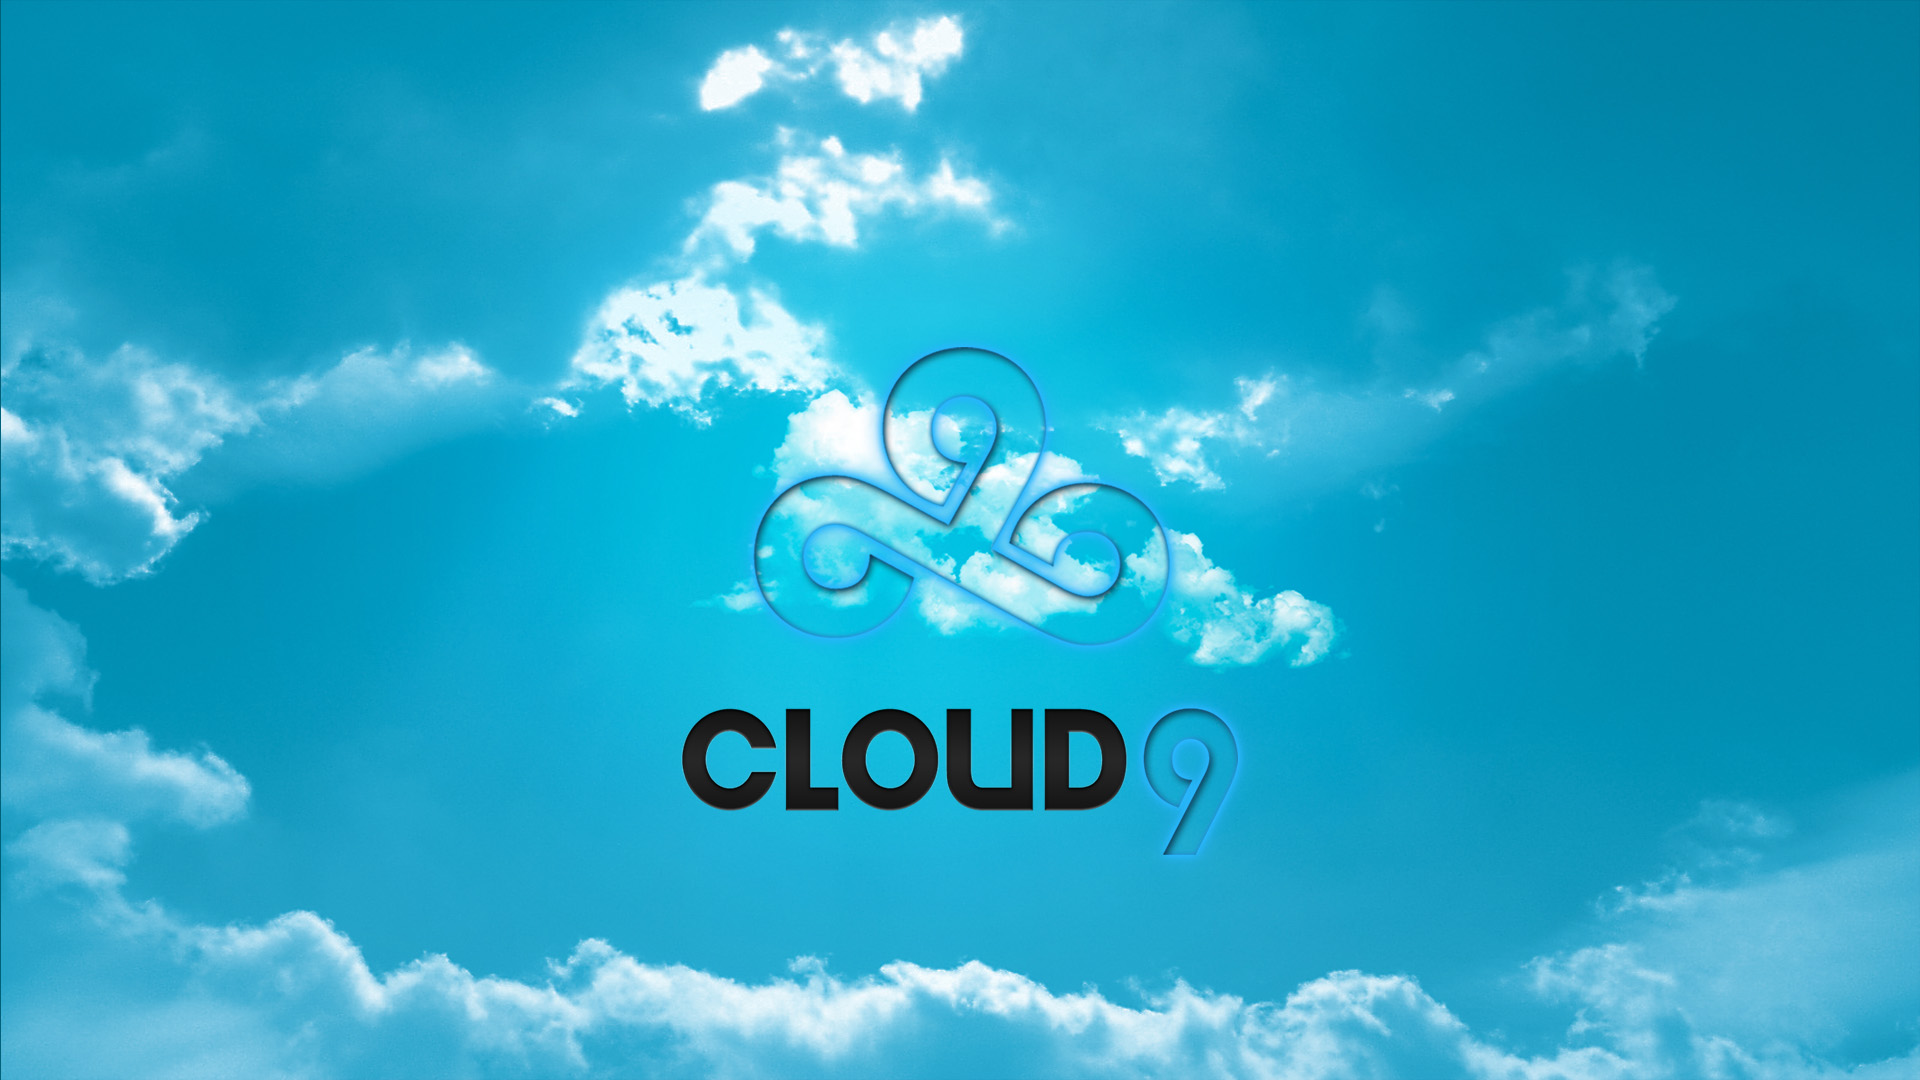 cloud 9 iphone wallpaper reddit